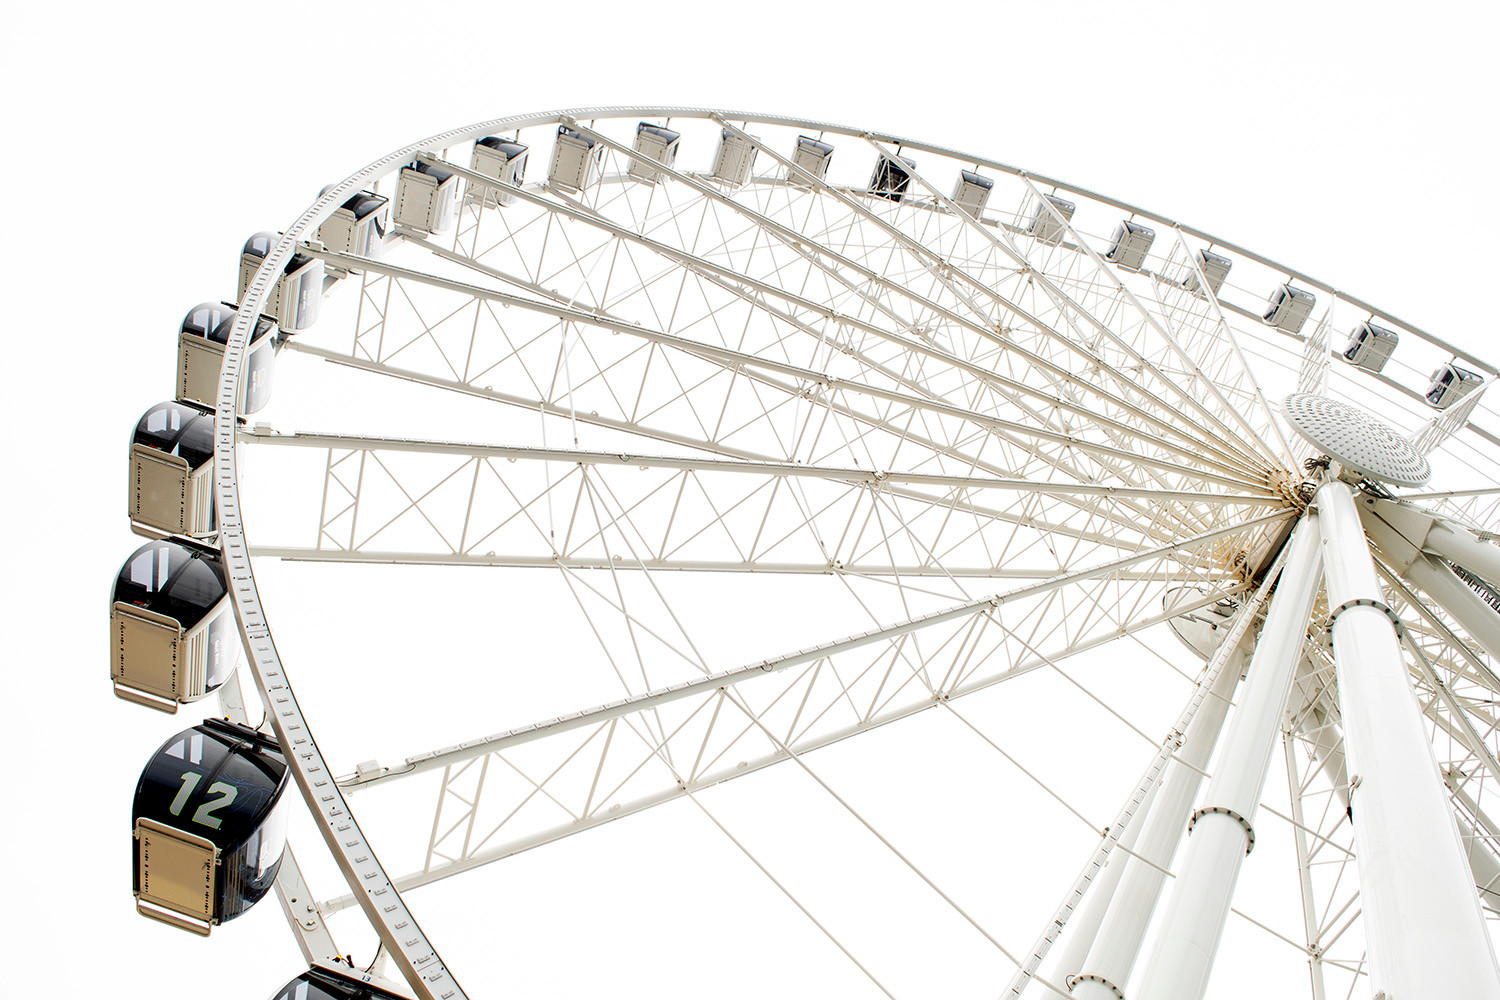 The Seattle Great Wheel honors the famous Seahawk's 12th man with the number painted on one of their carriages. Seattle, WA. 2019.